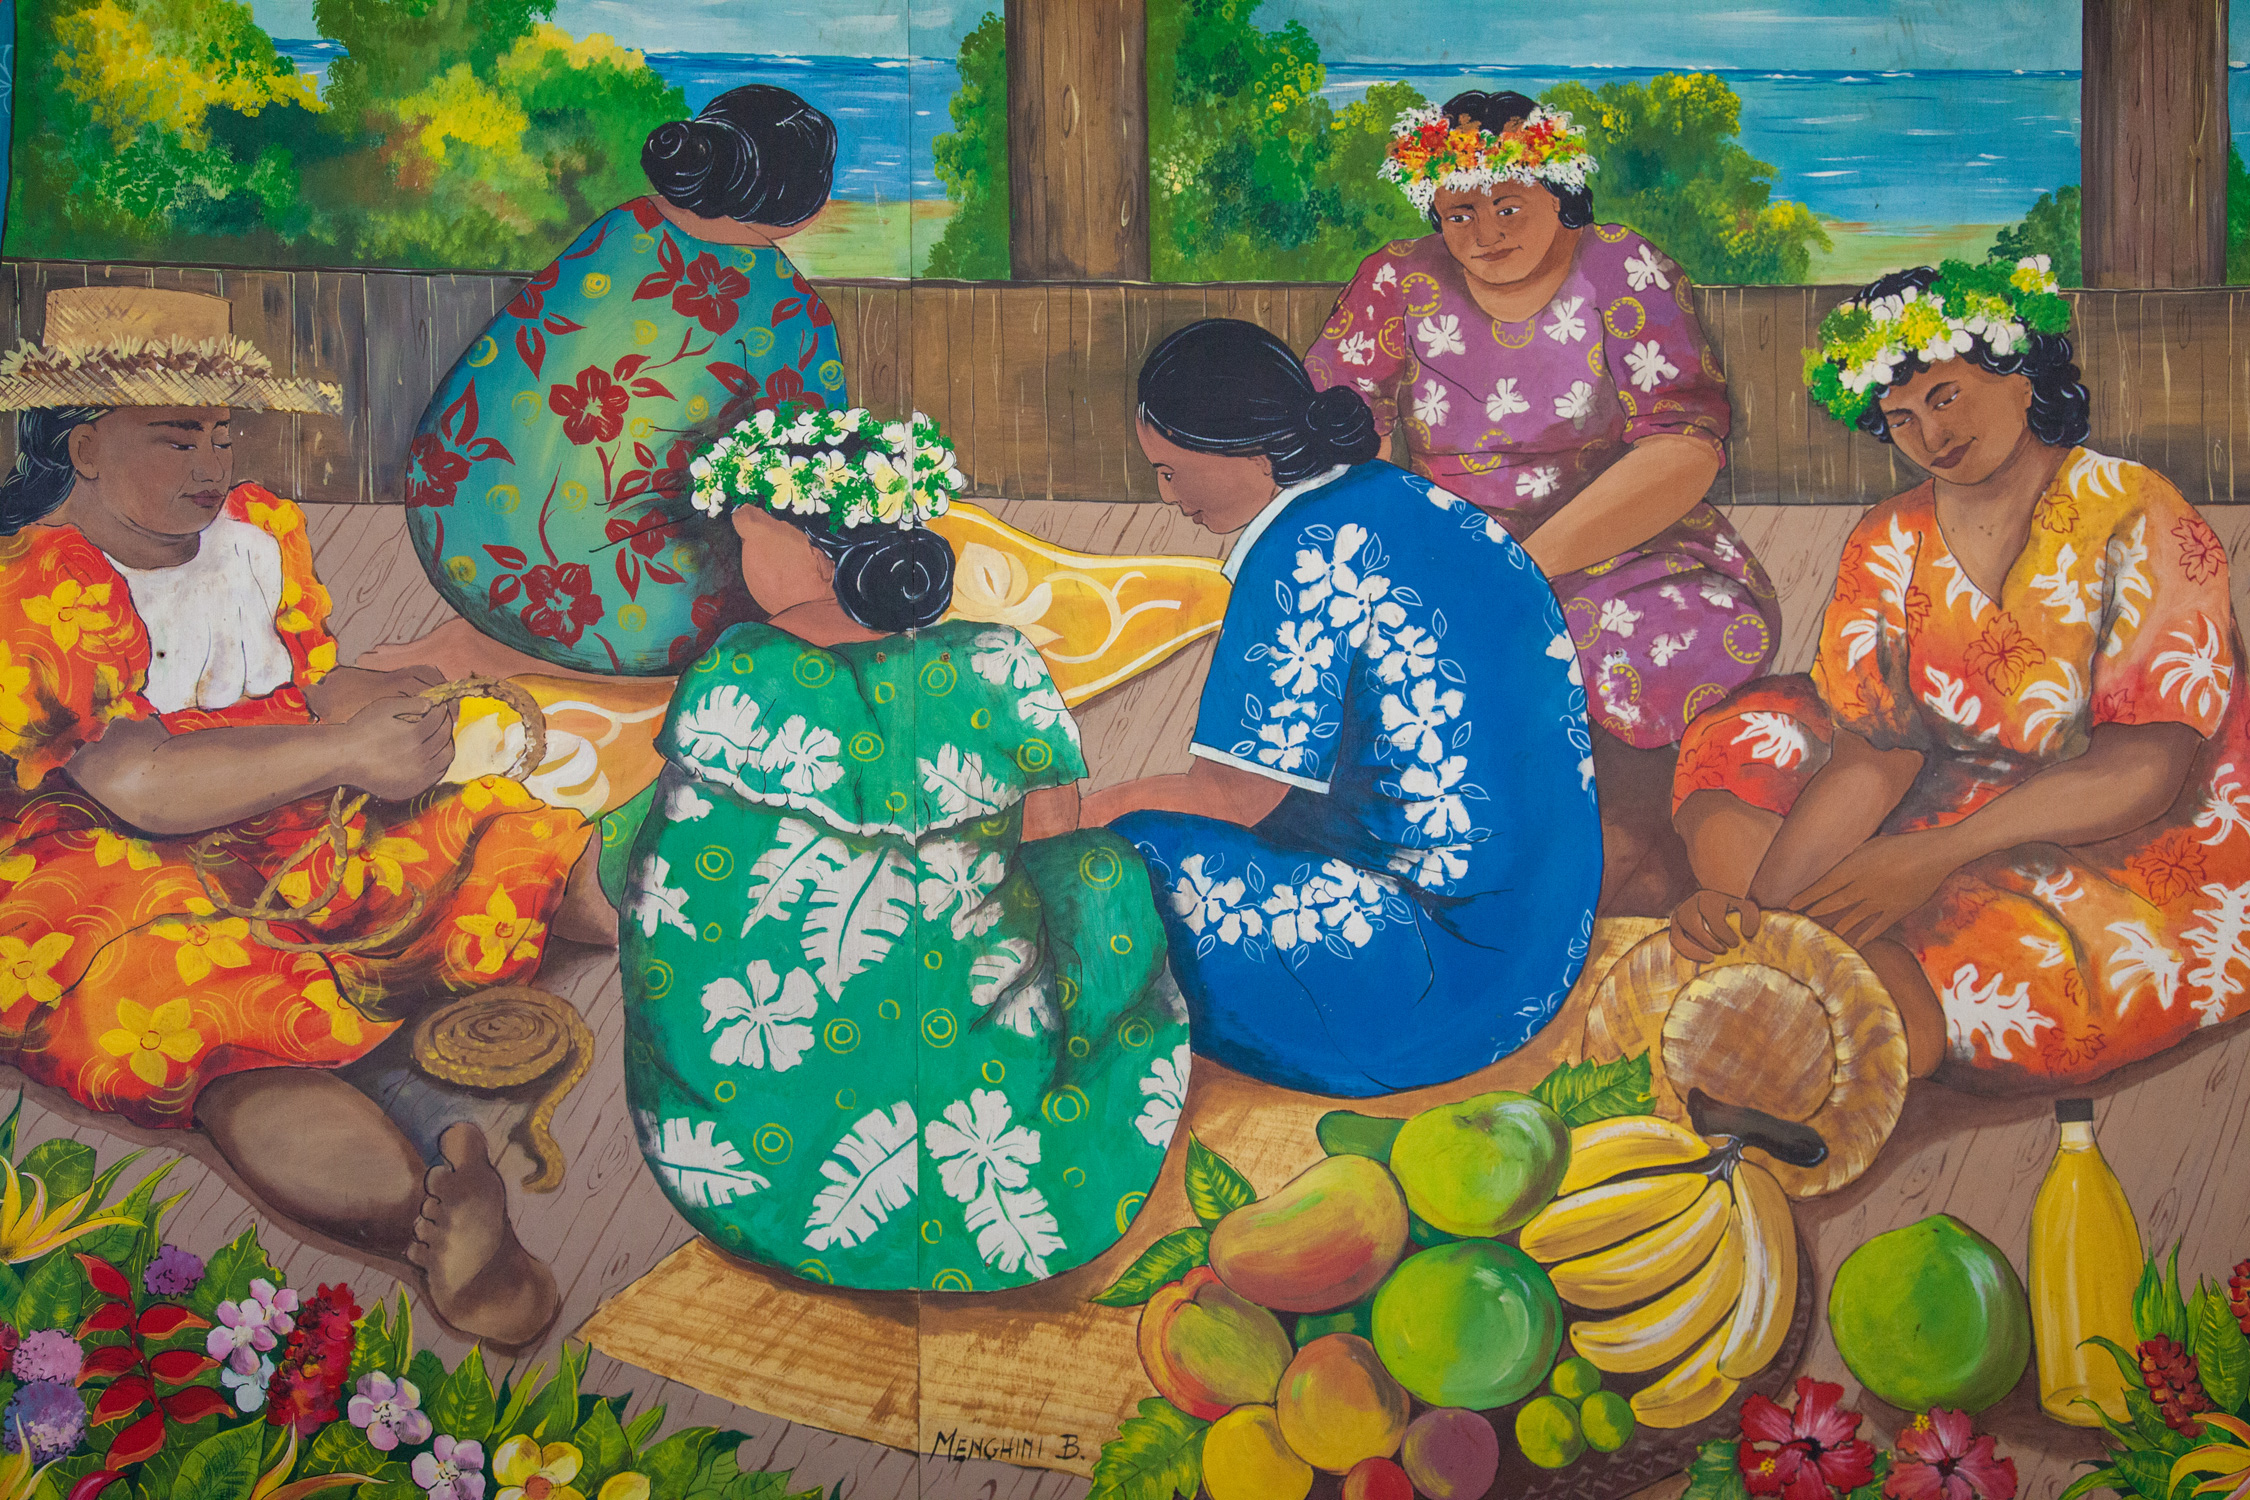 polynesie-francaise-tahiti-pacifique-copyright-maeva-destombes_MG_1789